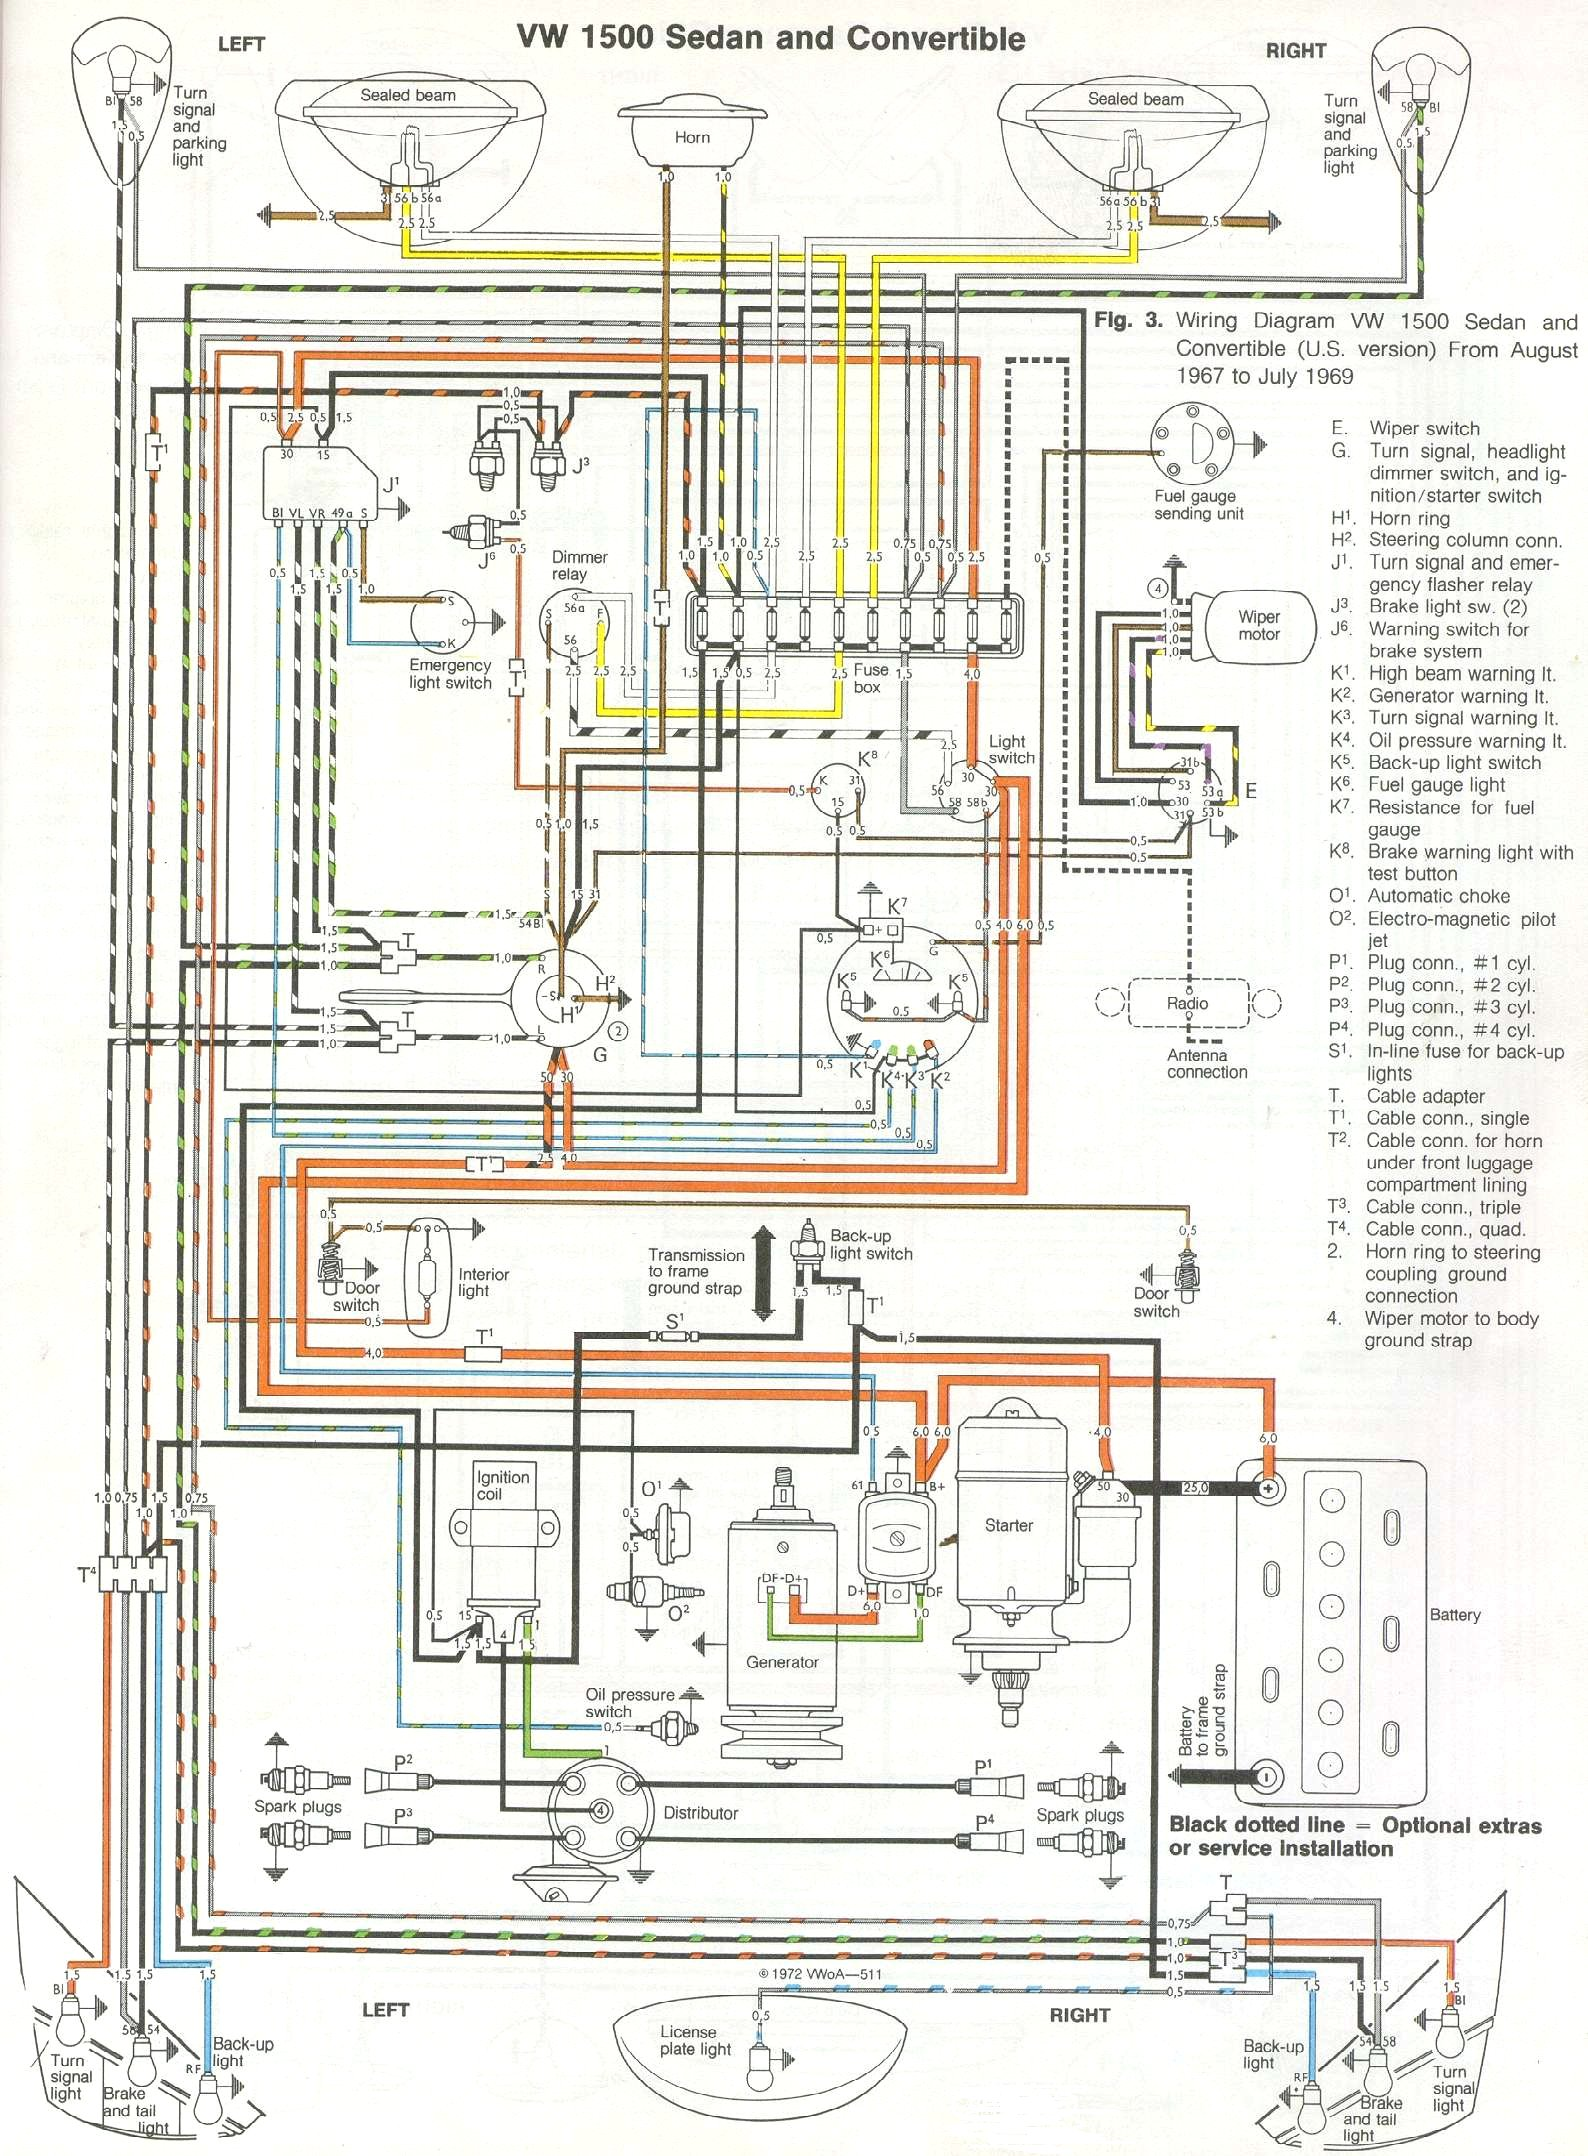 Vw 1600 Wiring Diagram List Of Schematic Circuit Ford Spark Plug Wire 1969 71 Beetle Thegoldenbug Com Rh